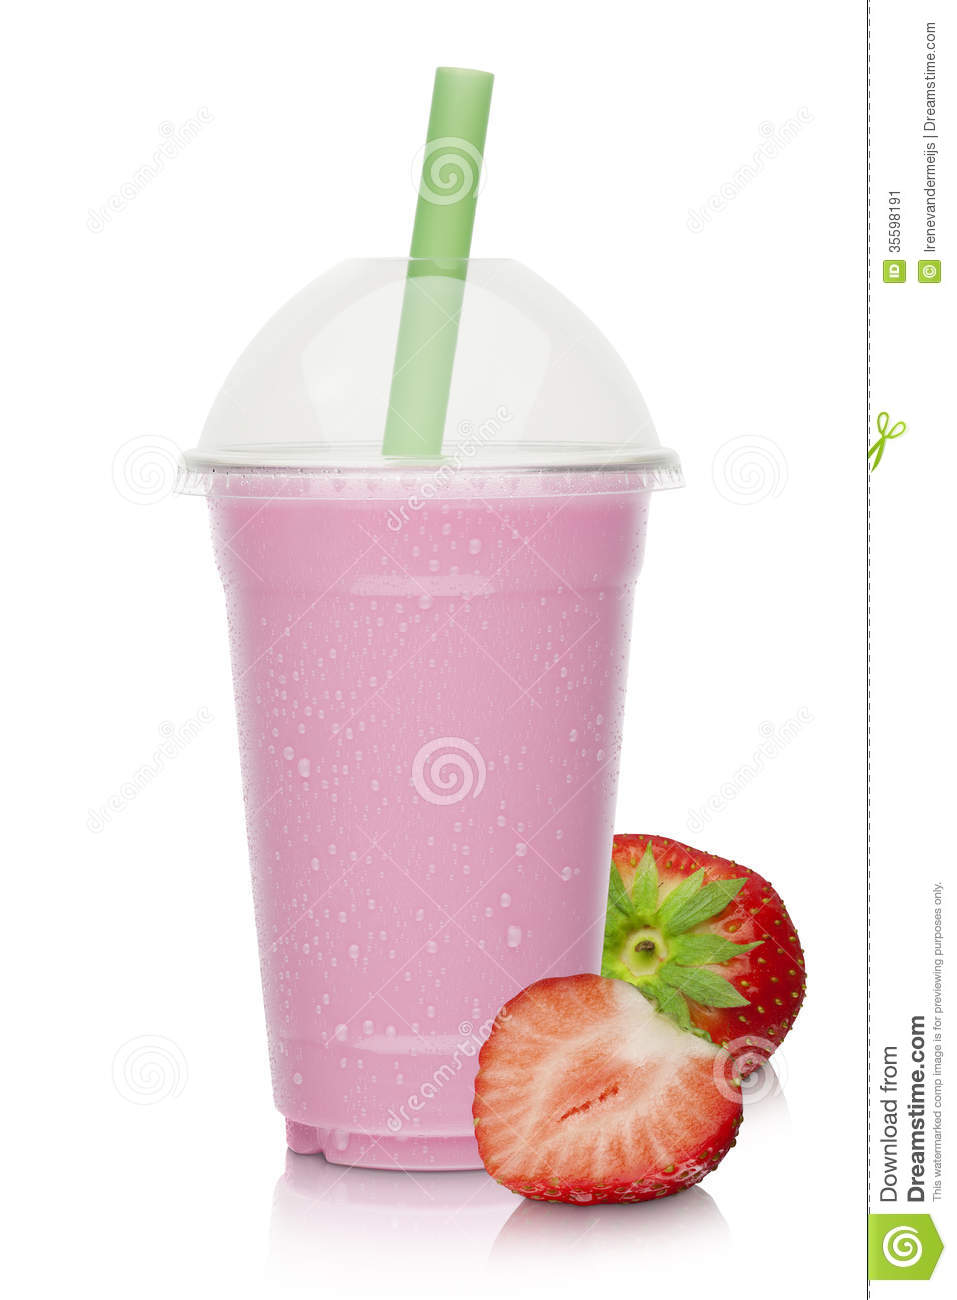 Stock Image Strawberry Milkshake Fresh Strawberries White Background Image35598191 on cartoon smoothie